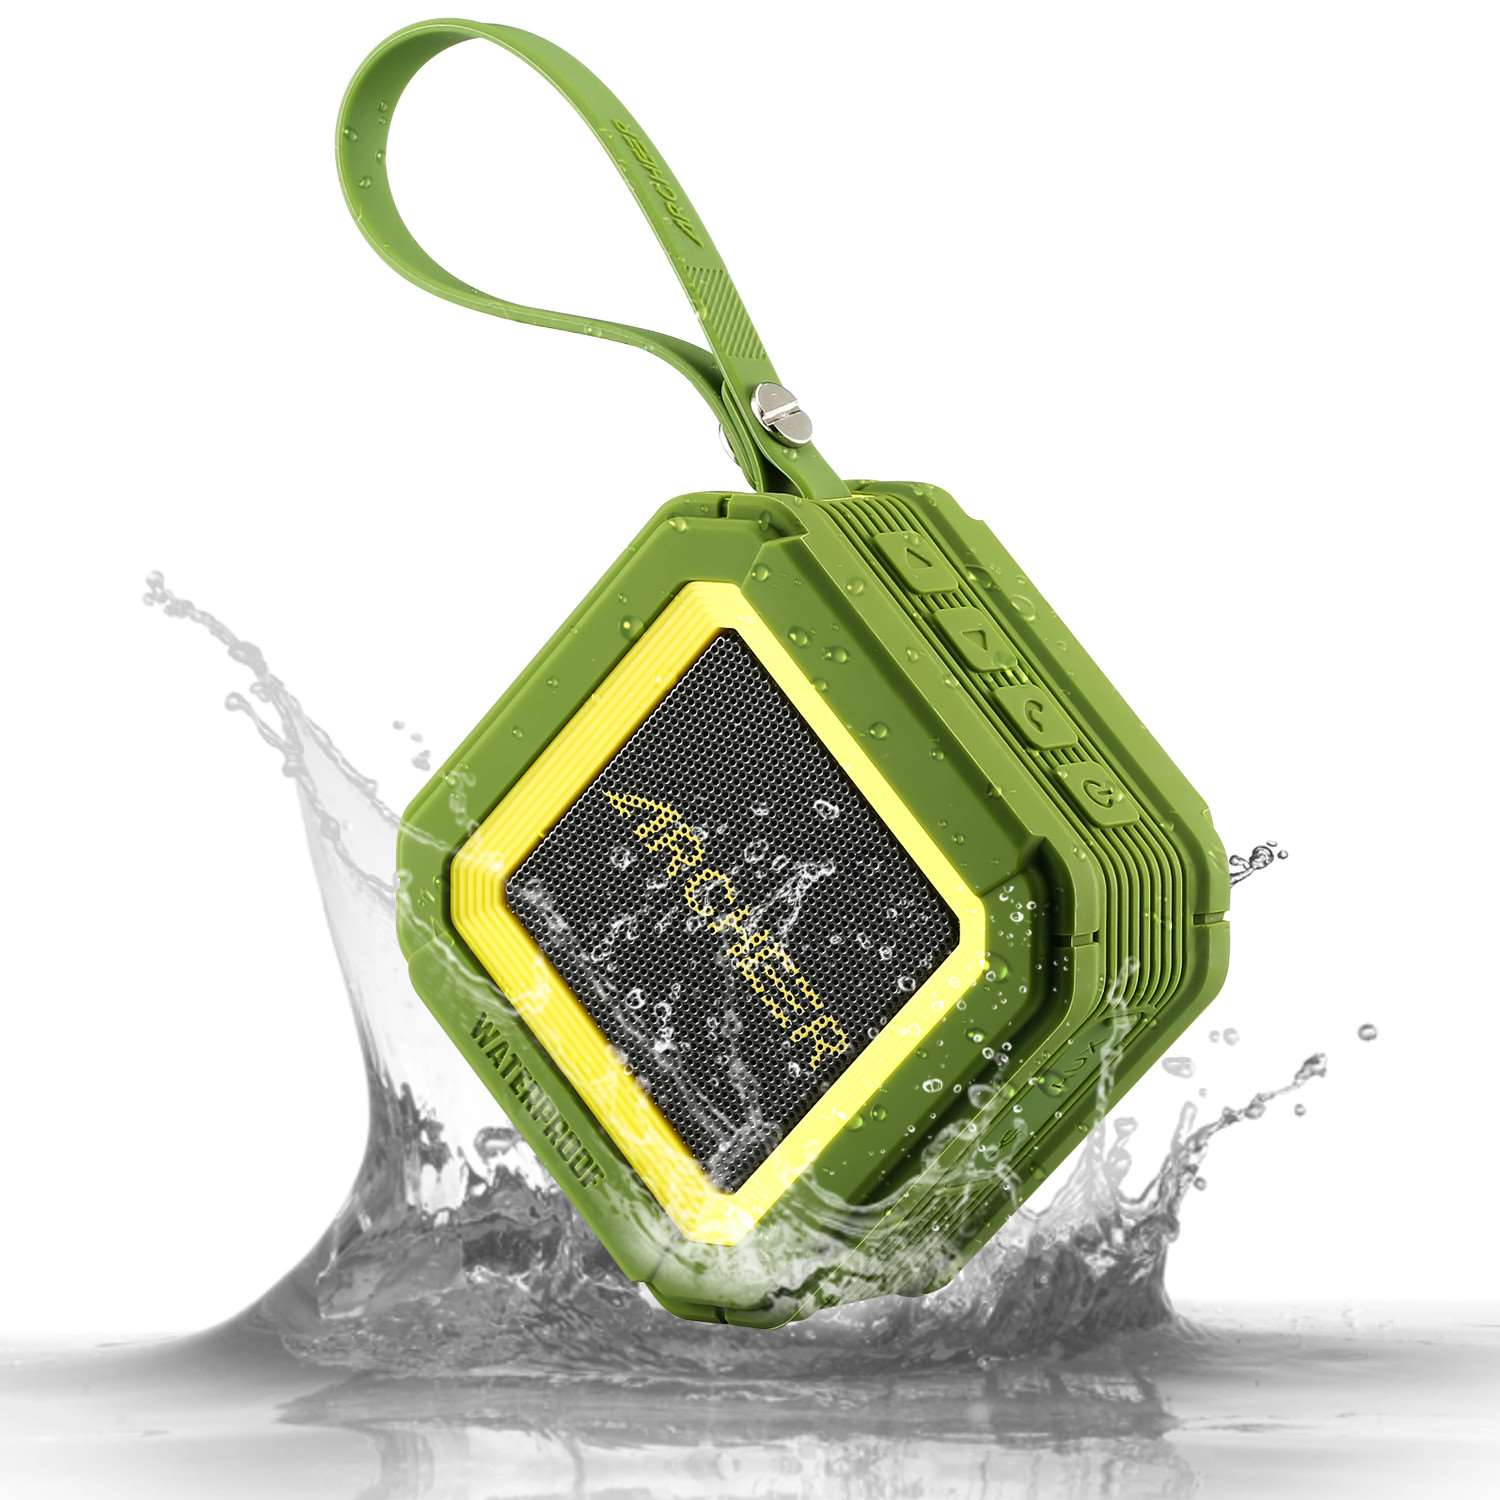 Original Archeer A106 IPX5 Waterproof Bluetooth Speaker Outdoor Portable Bluetooth Speakers with Mic For iPhone Robust Bass